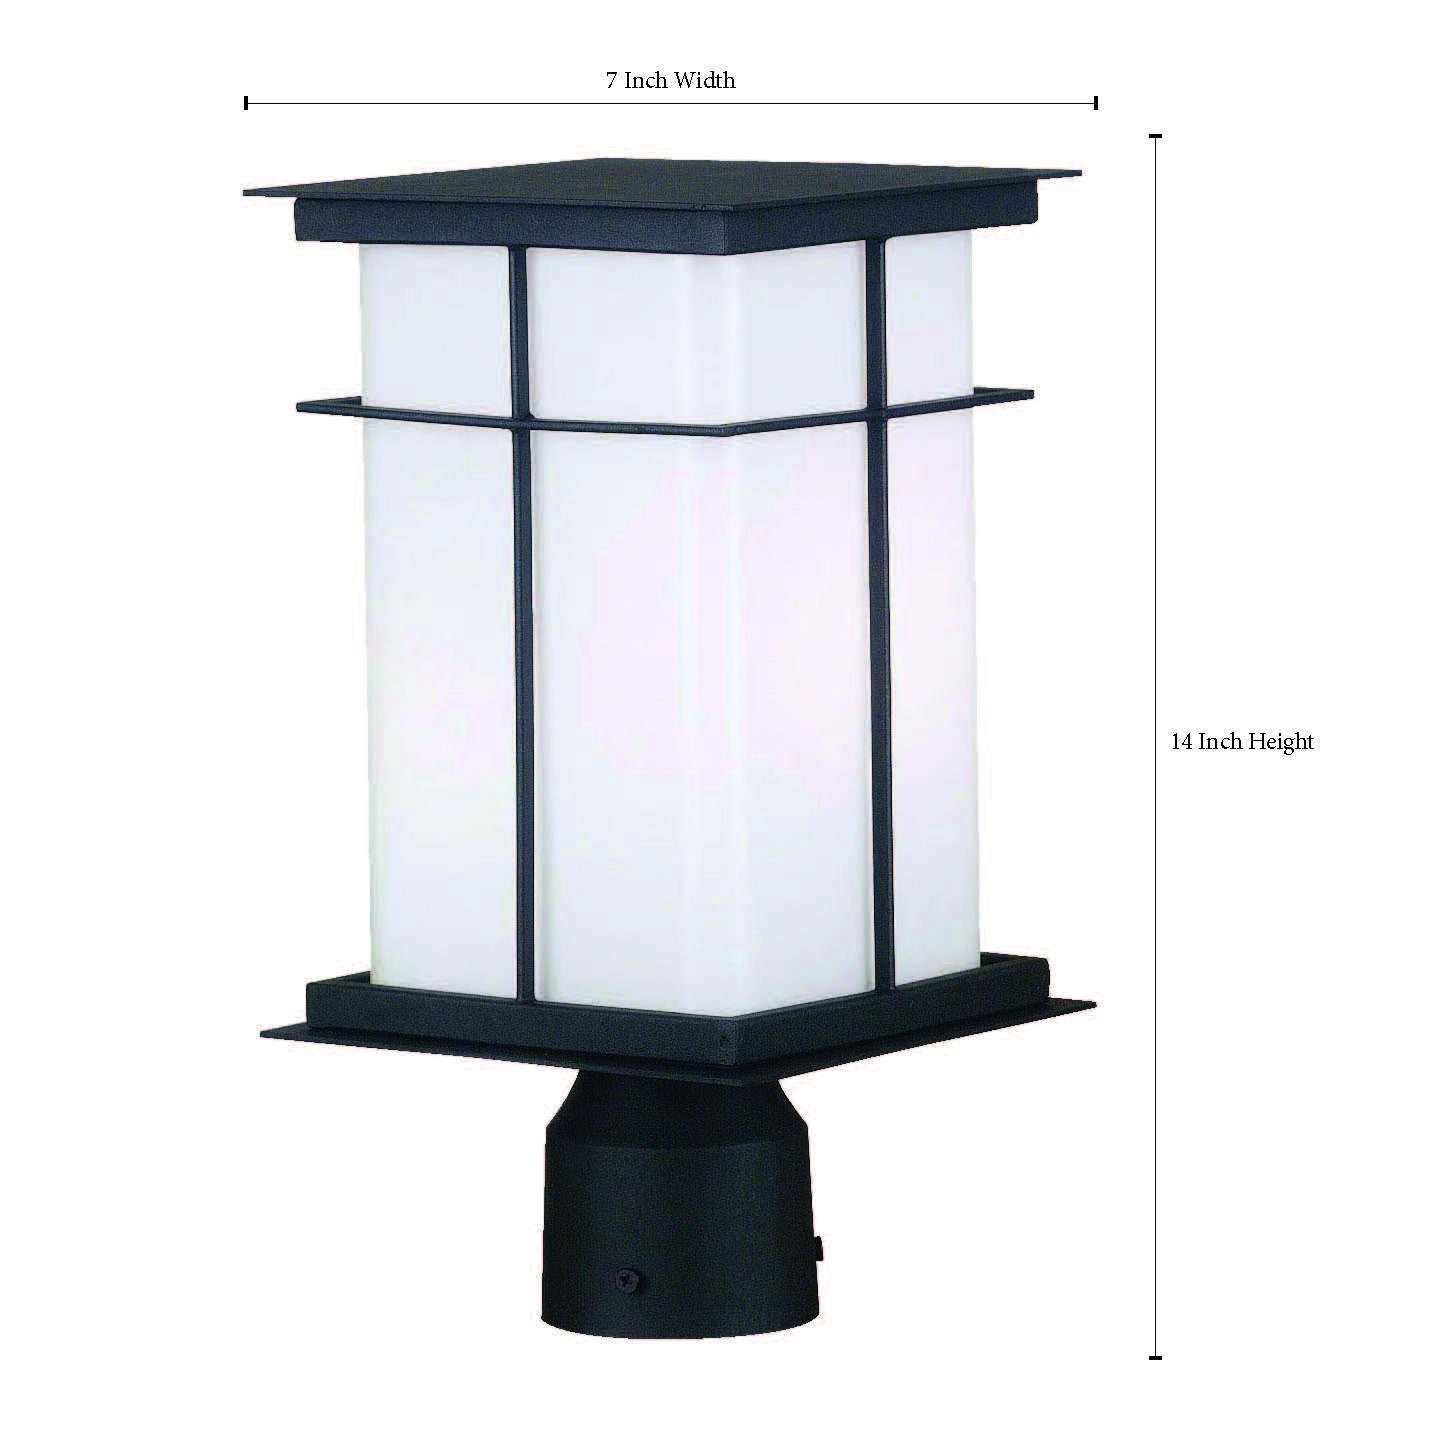 Kenroy Home 70003TB Mesa Medium Post Lantern with 6-Inch Shade